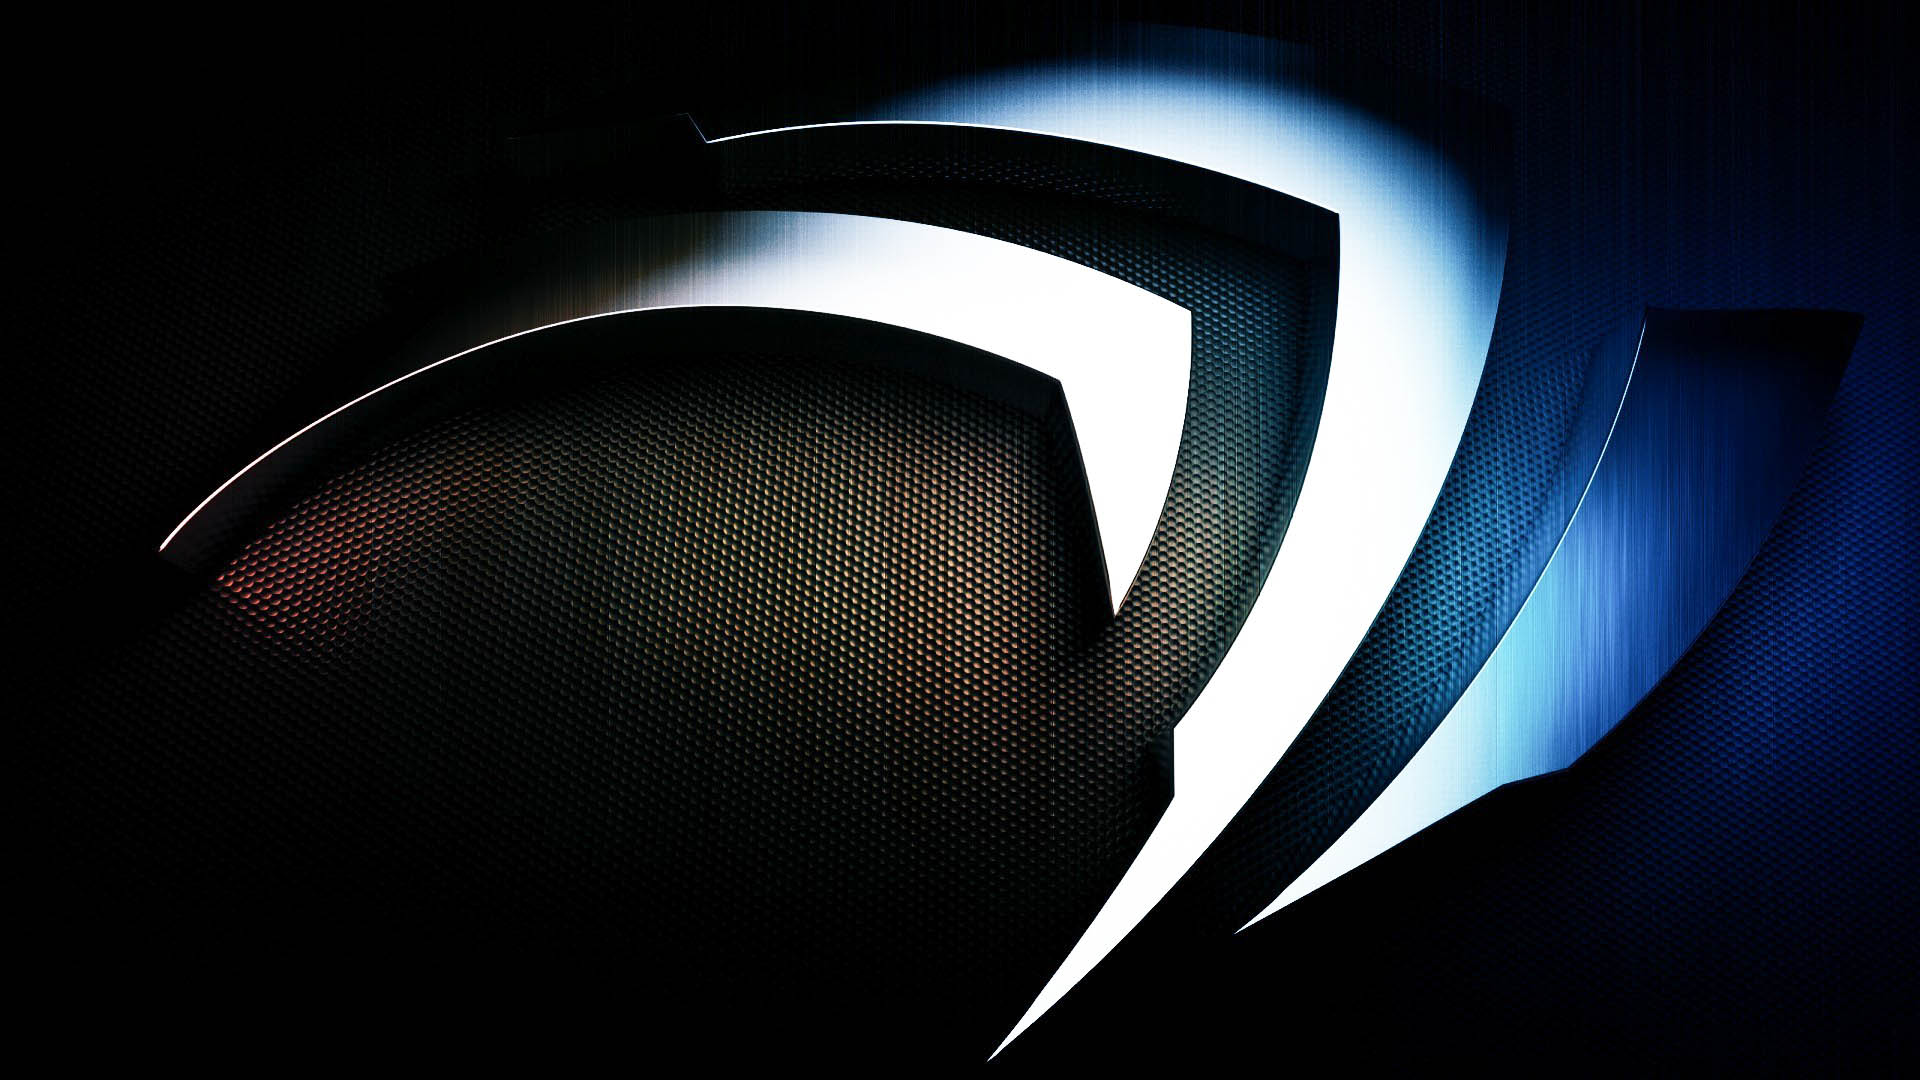 Nvidia Hd Desktop Backrounds High Definition All Hd Wallpapers